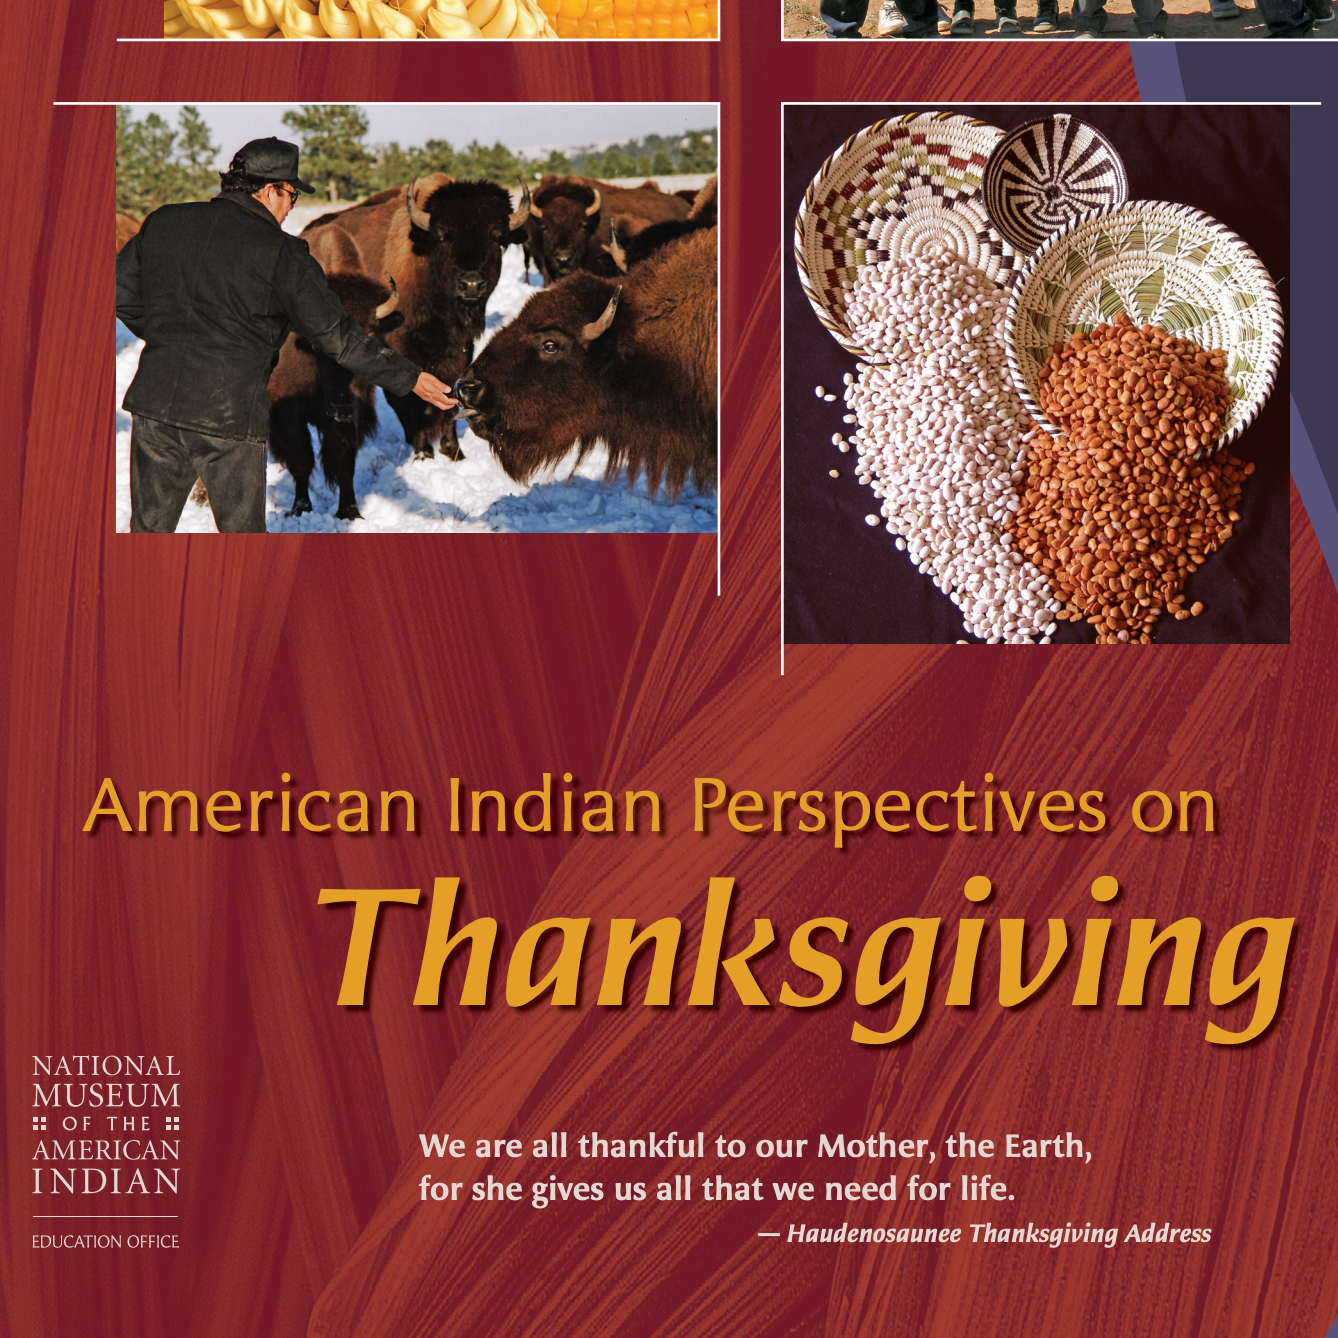 This resource from the National Museum of the American Indian is intended for teachers of grades 4-8, but there is great information for parents of children of all ages as well.